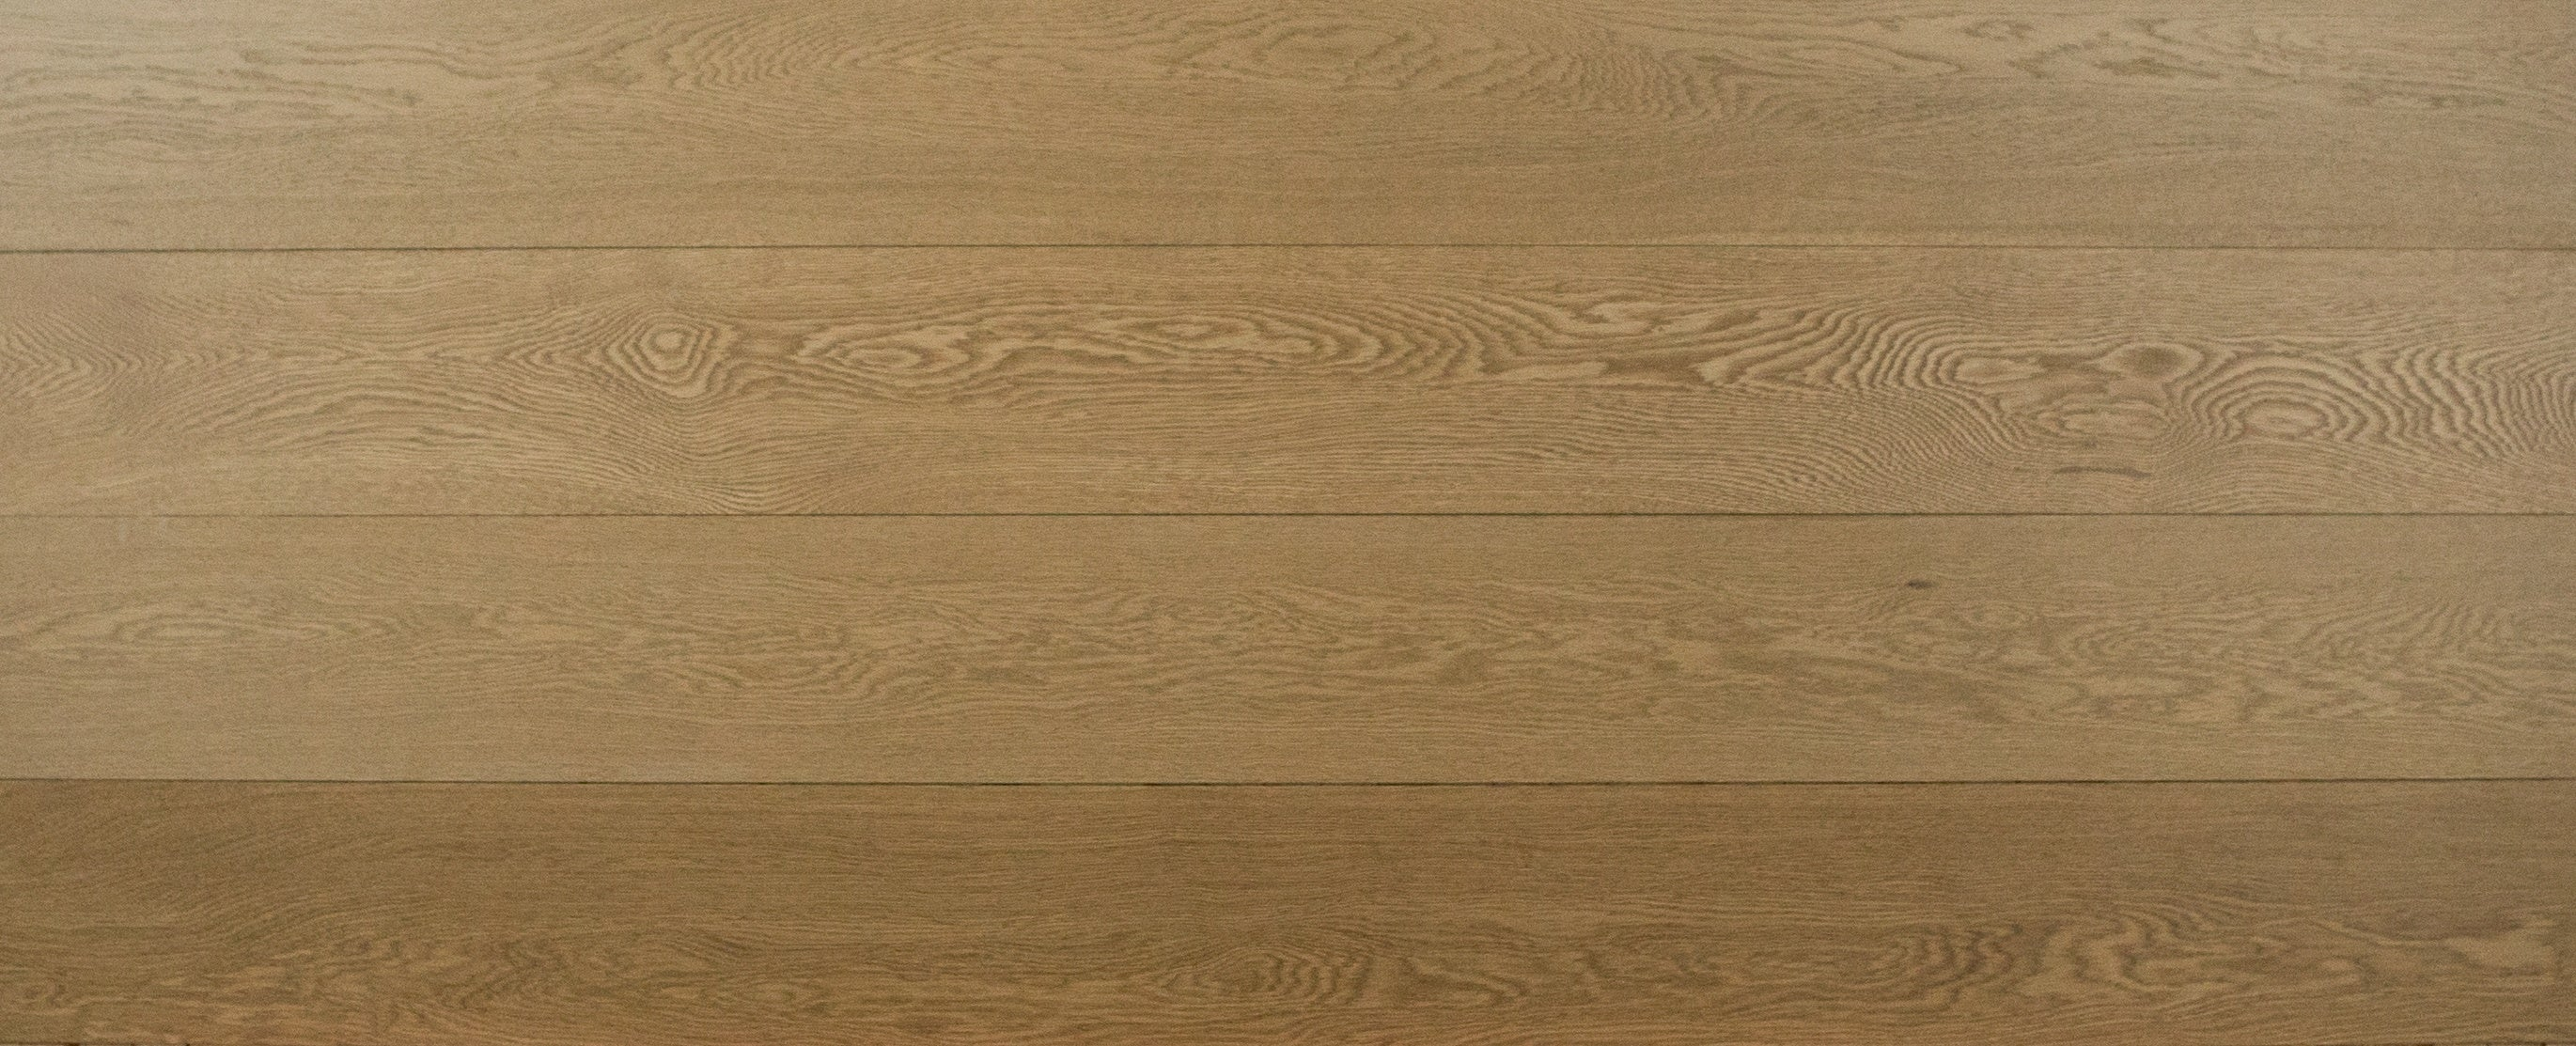 Light Brushed Fumed Raw Timber UV Cured Finish